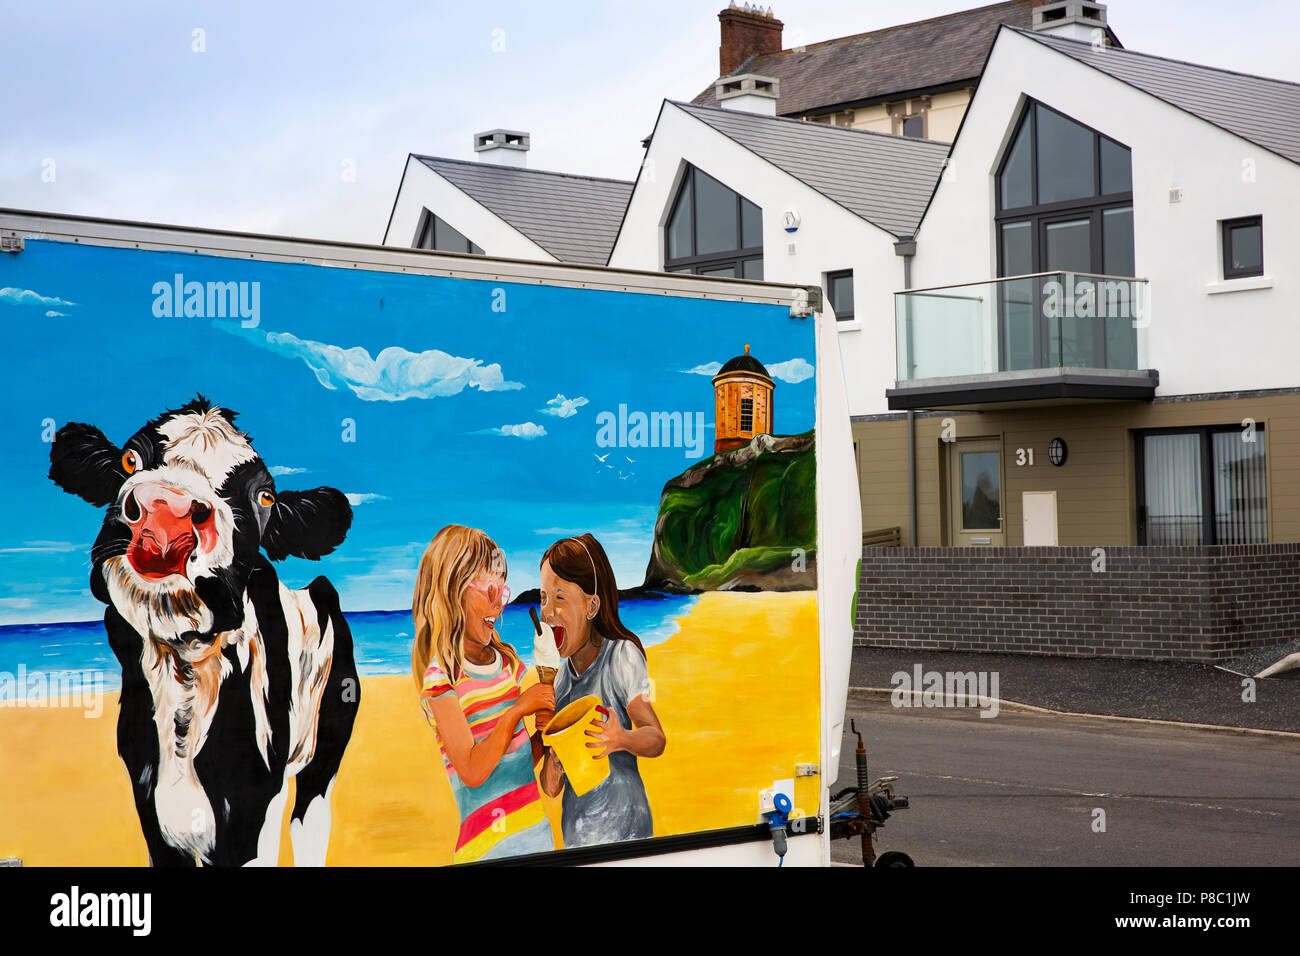 UK, Northern Ireland, Co Londonderry, Castlerock, painted ice cream van and seafront homes Stock Photo